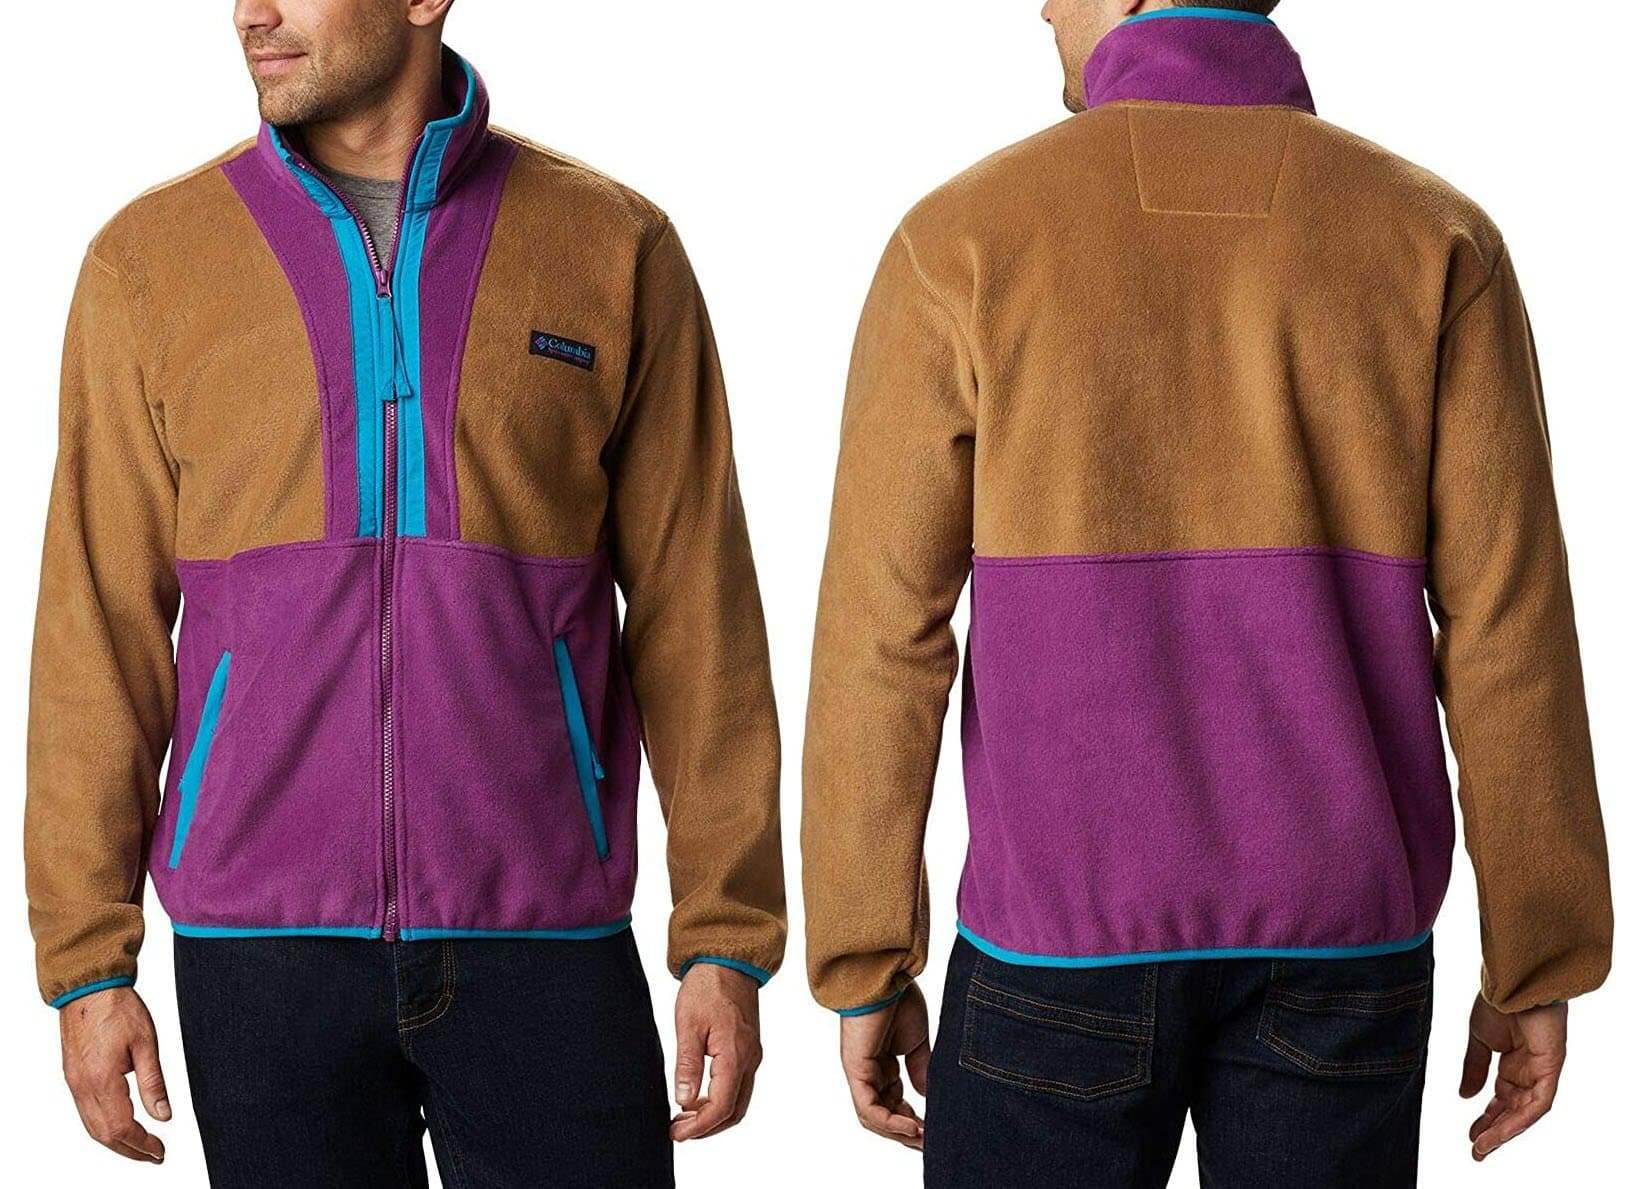 The Columbia Back Bowl fleece jacket features '90s-inspired color-blocking